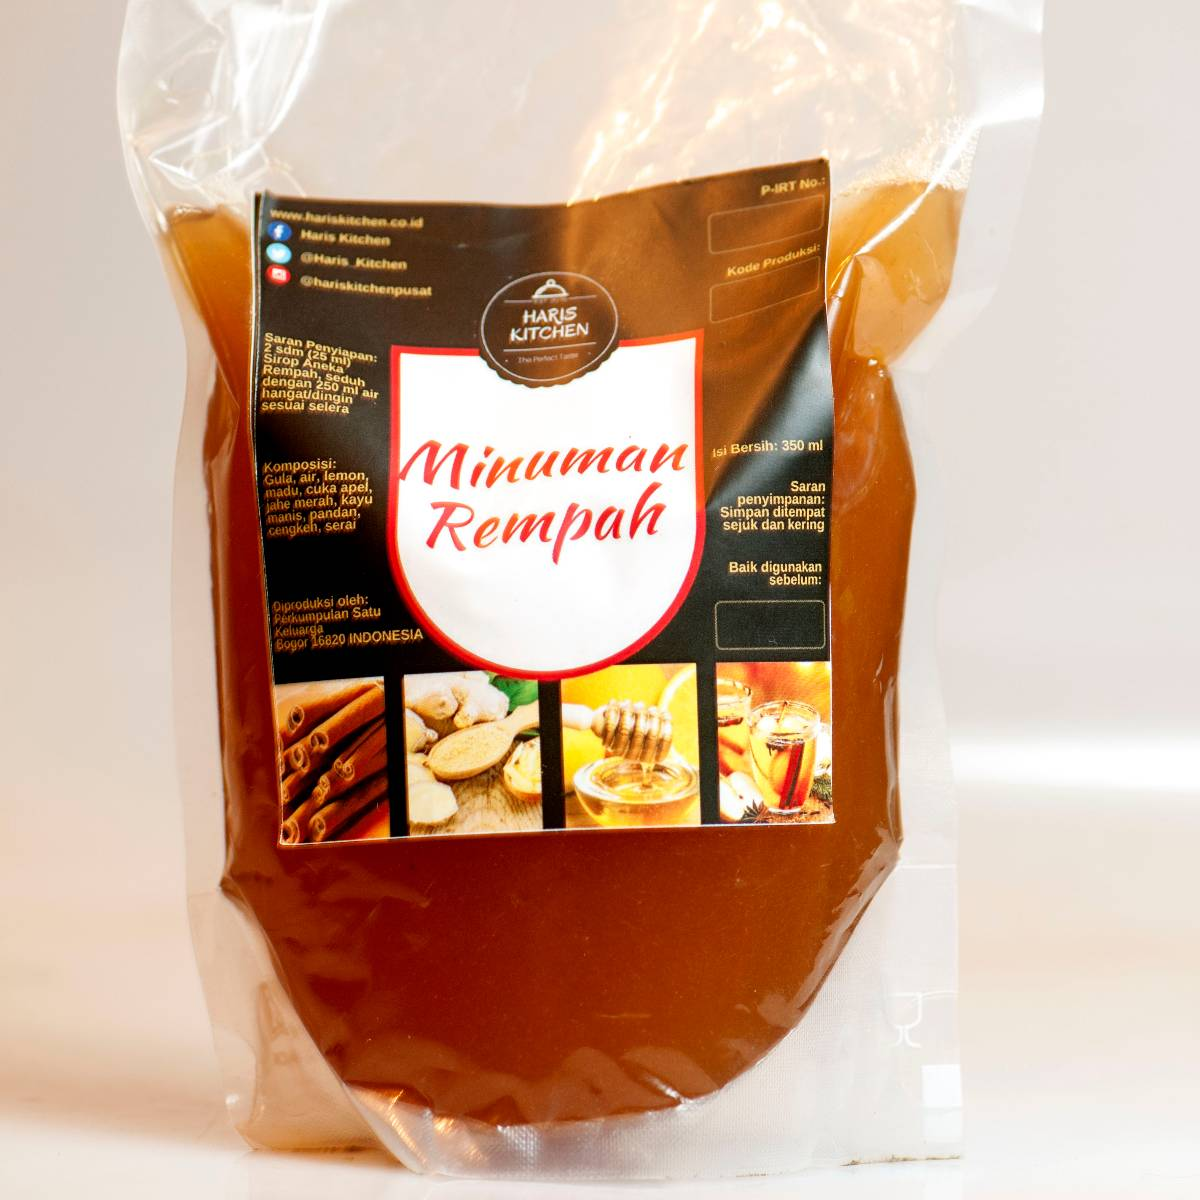 Minuman Rempah (sirop) Pouch